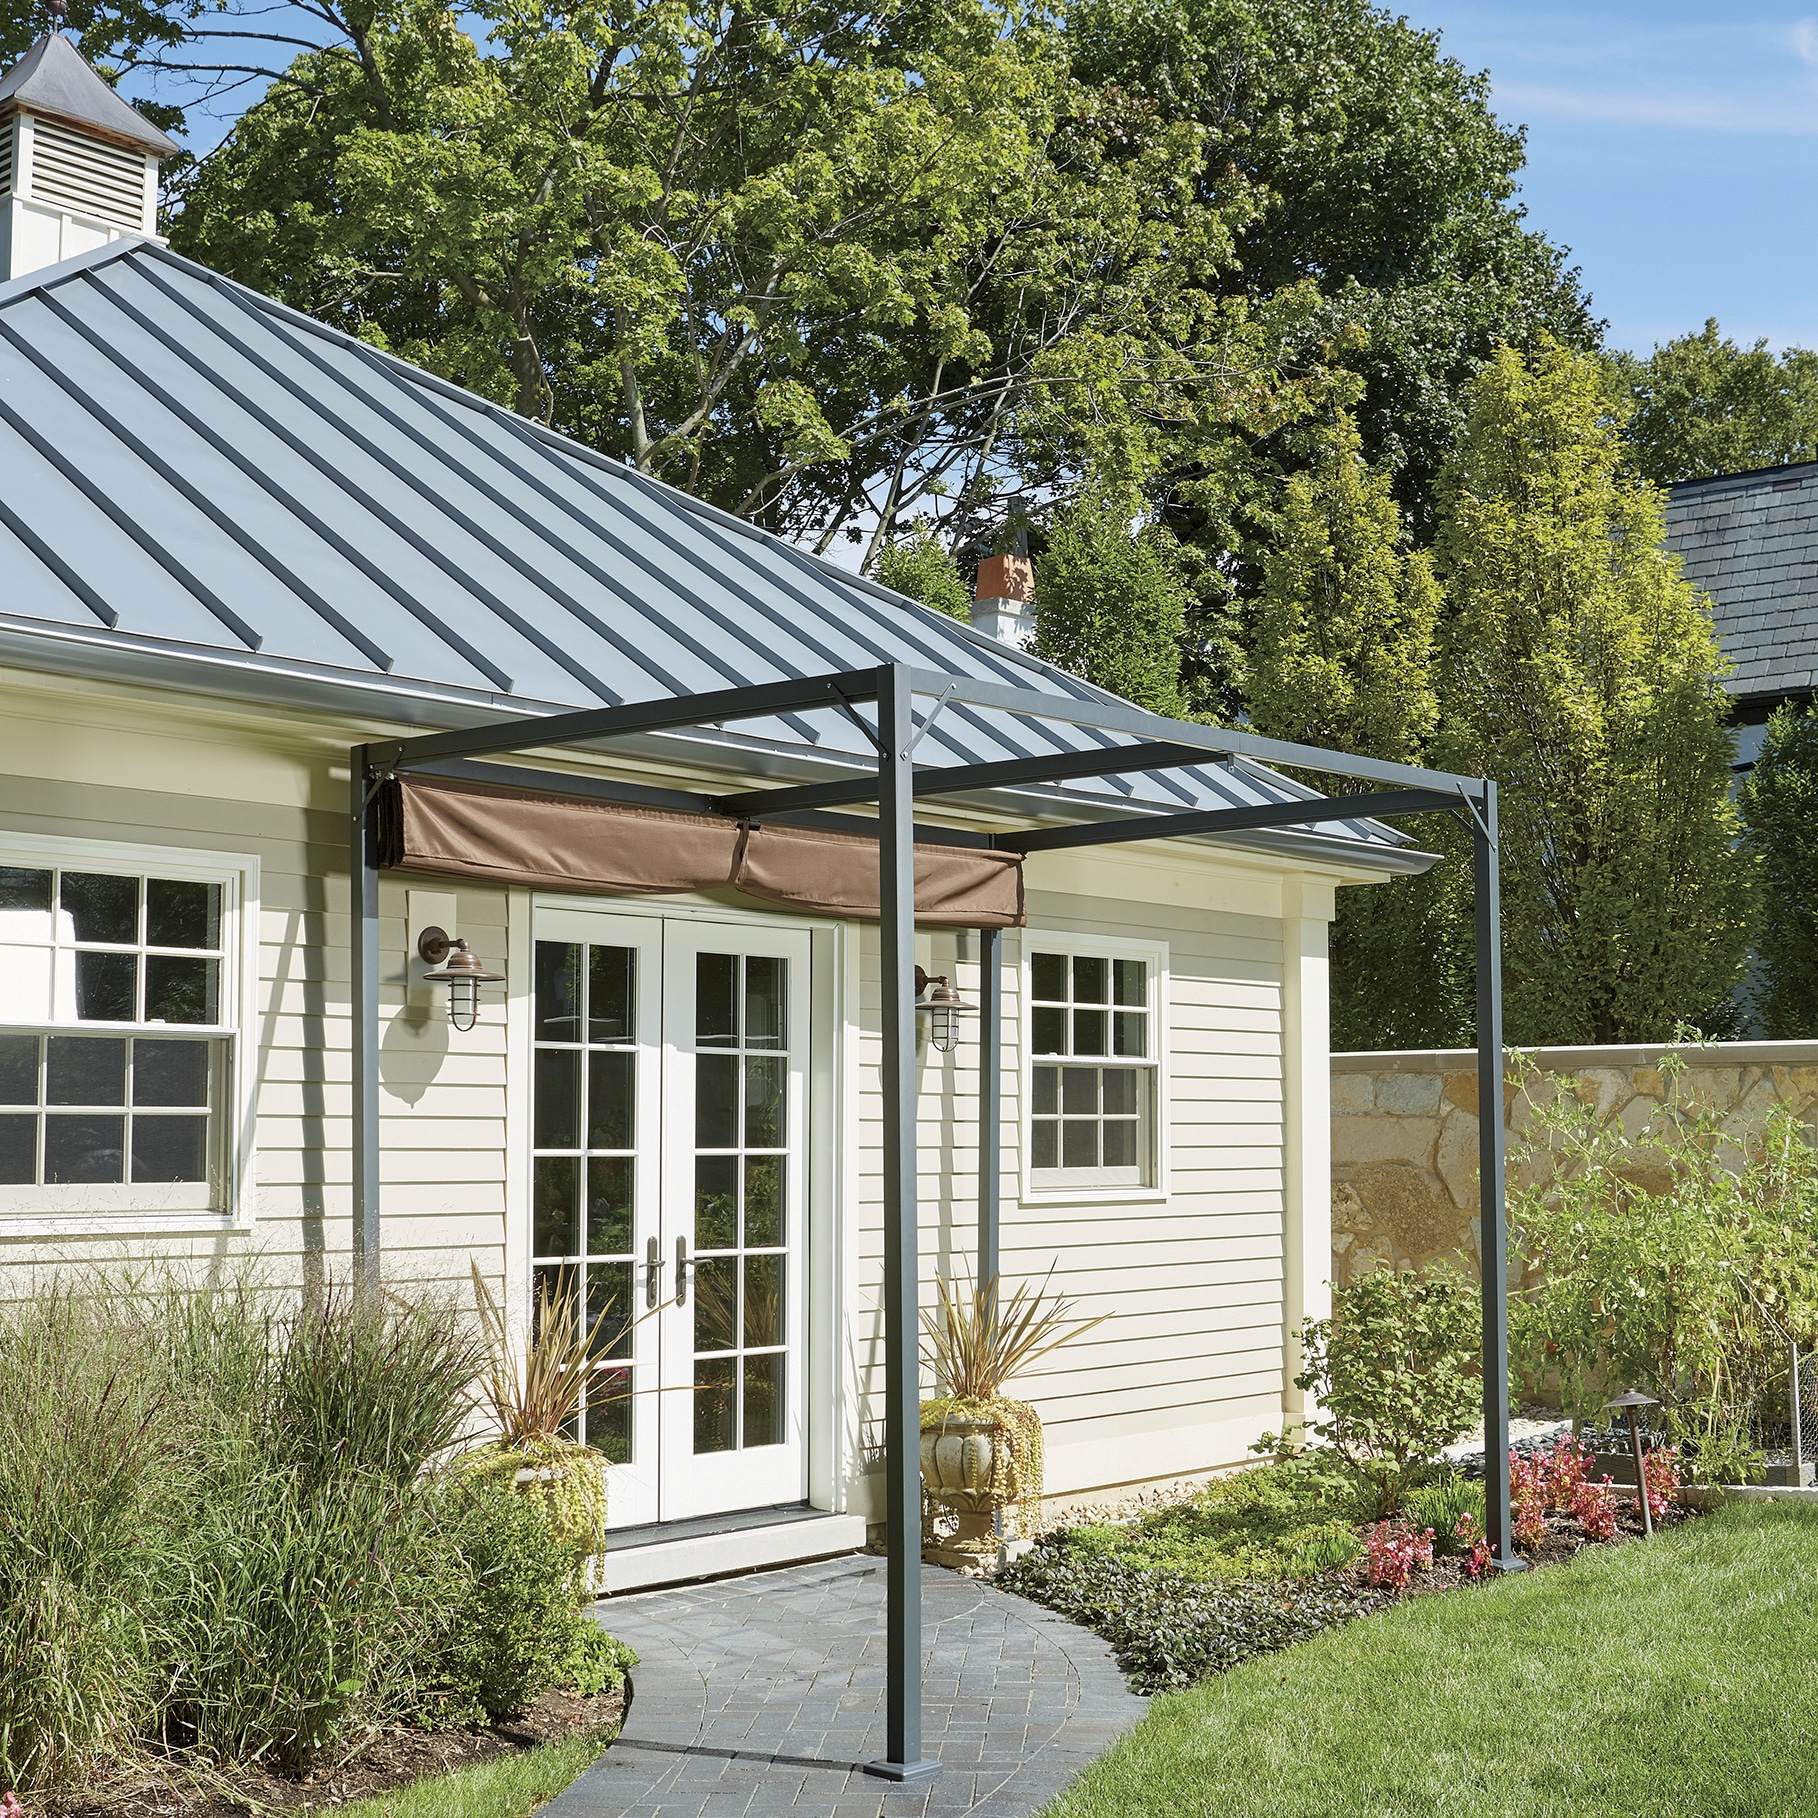 Gazebo Awning Retractable Awning Gazebo Montgomery Ward